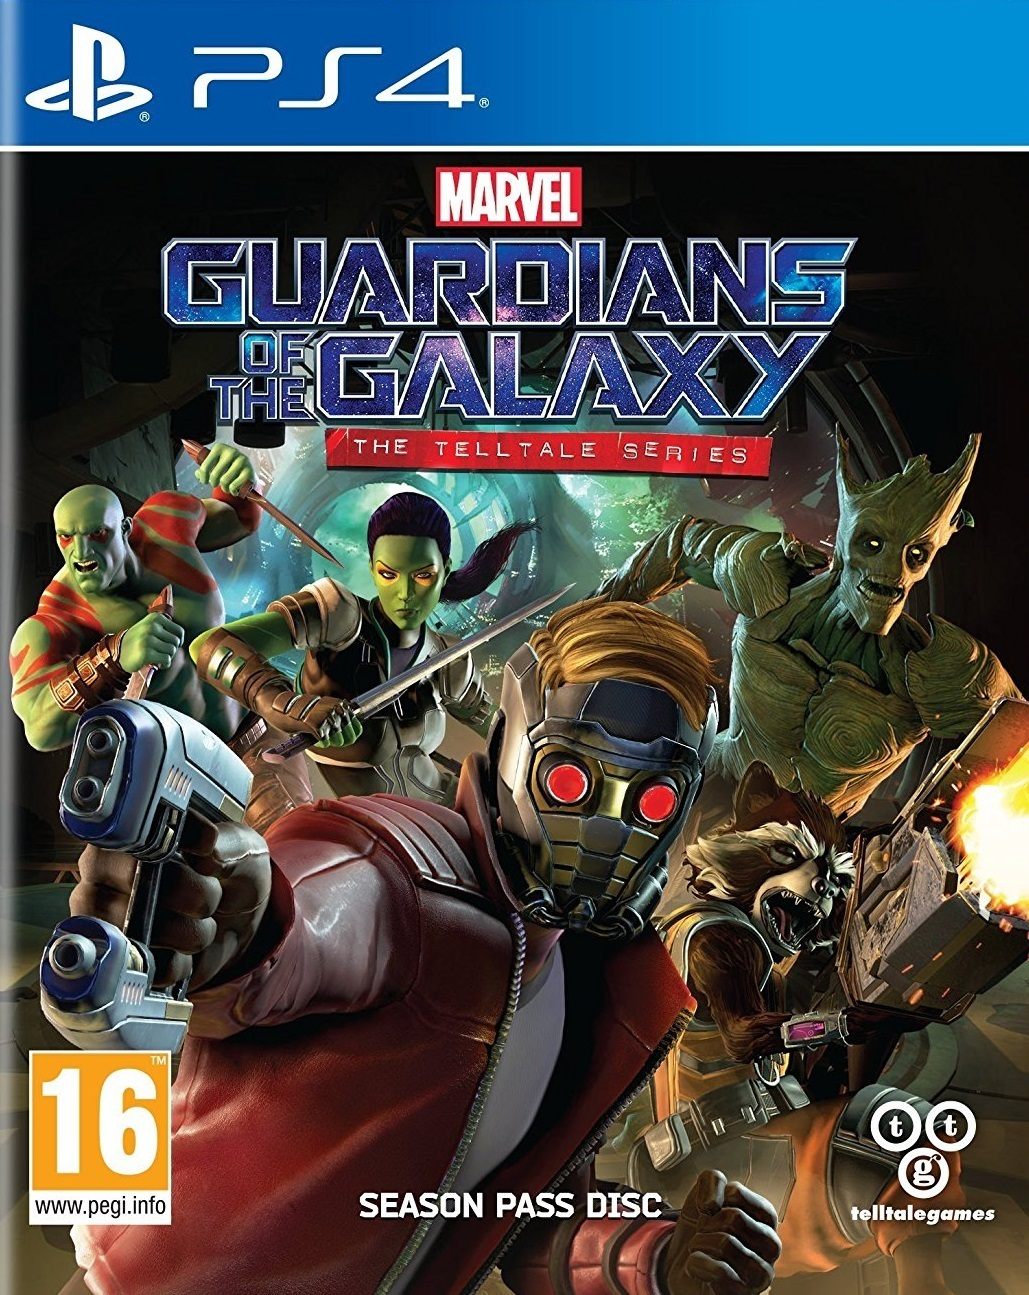 Marvel Guardians of the Galaxy: The TellTale Series for PS4 image